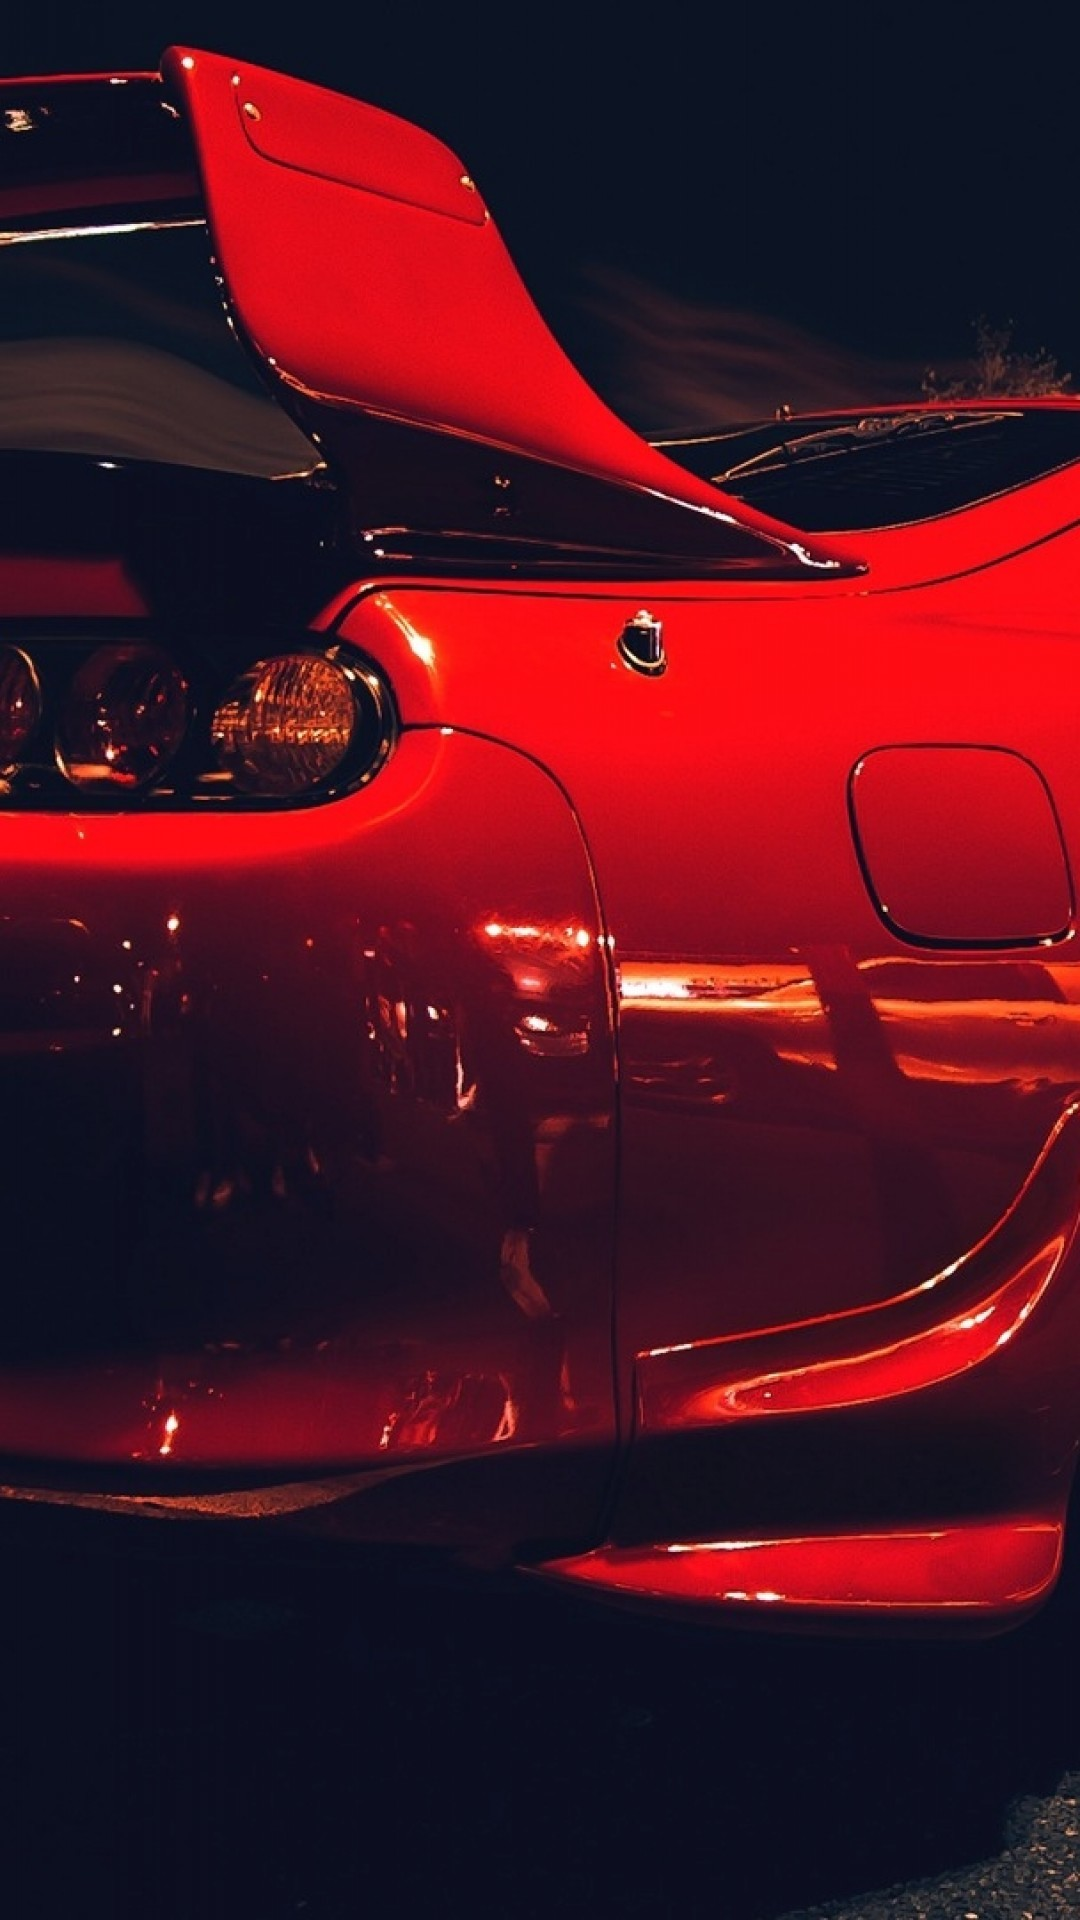 Toyota Supra, Red, Back View, Sport, Cars